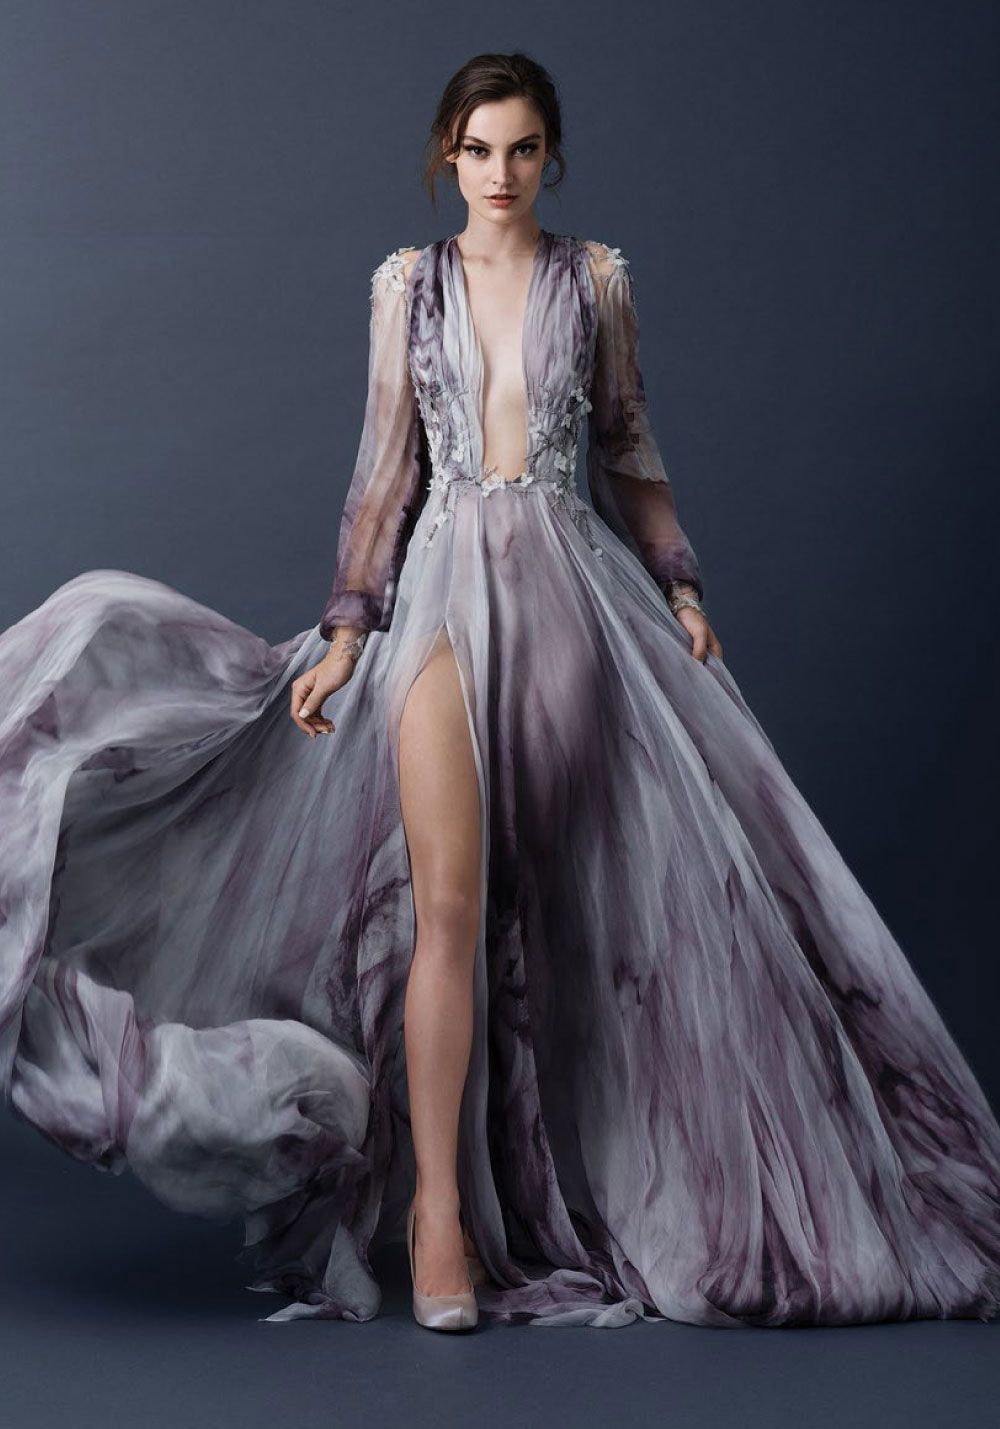 aw couture paolo sebastian red carpet moment pinterest